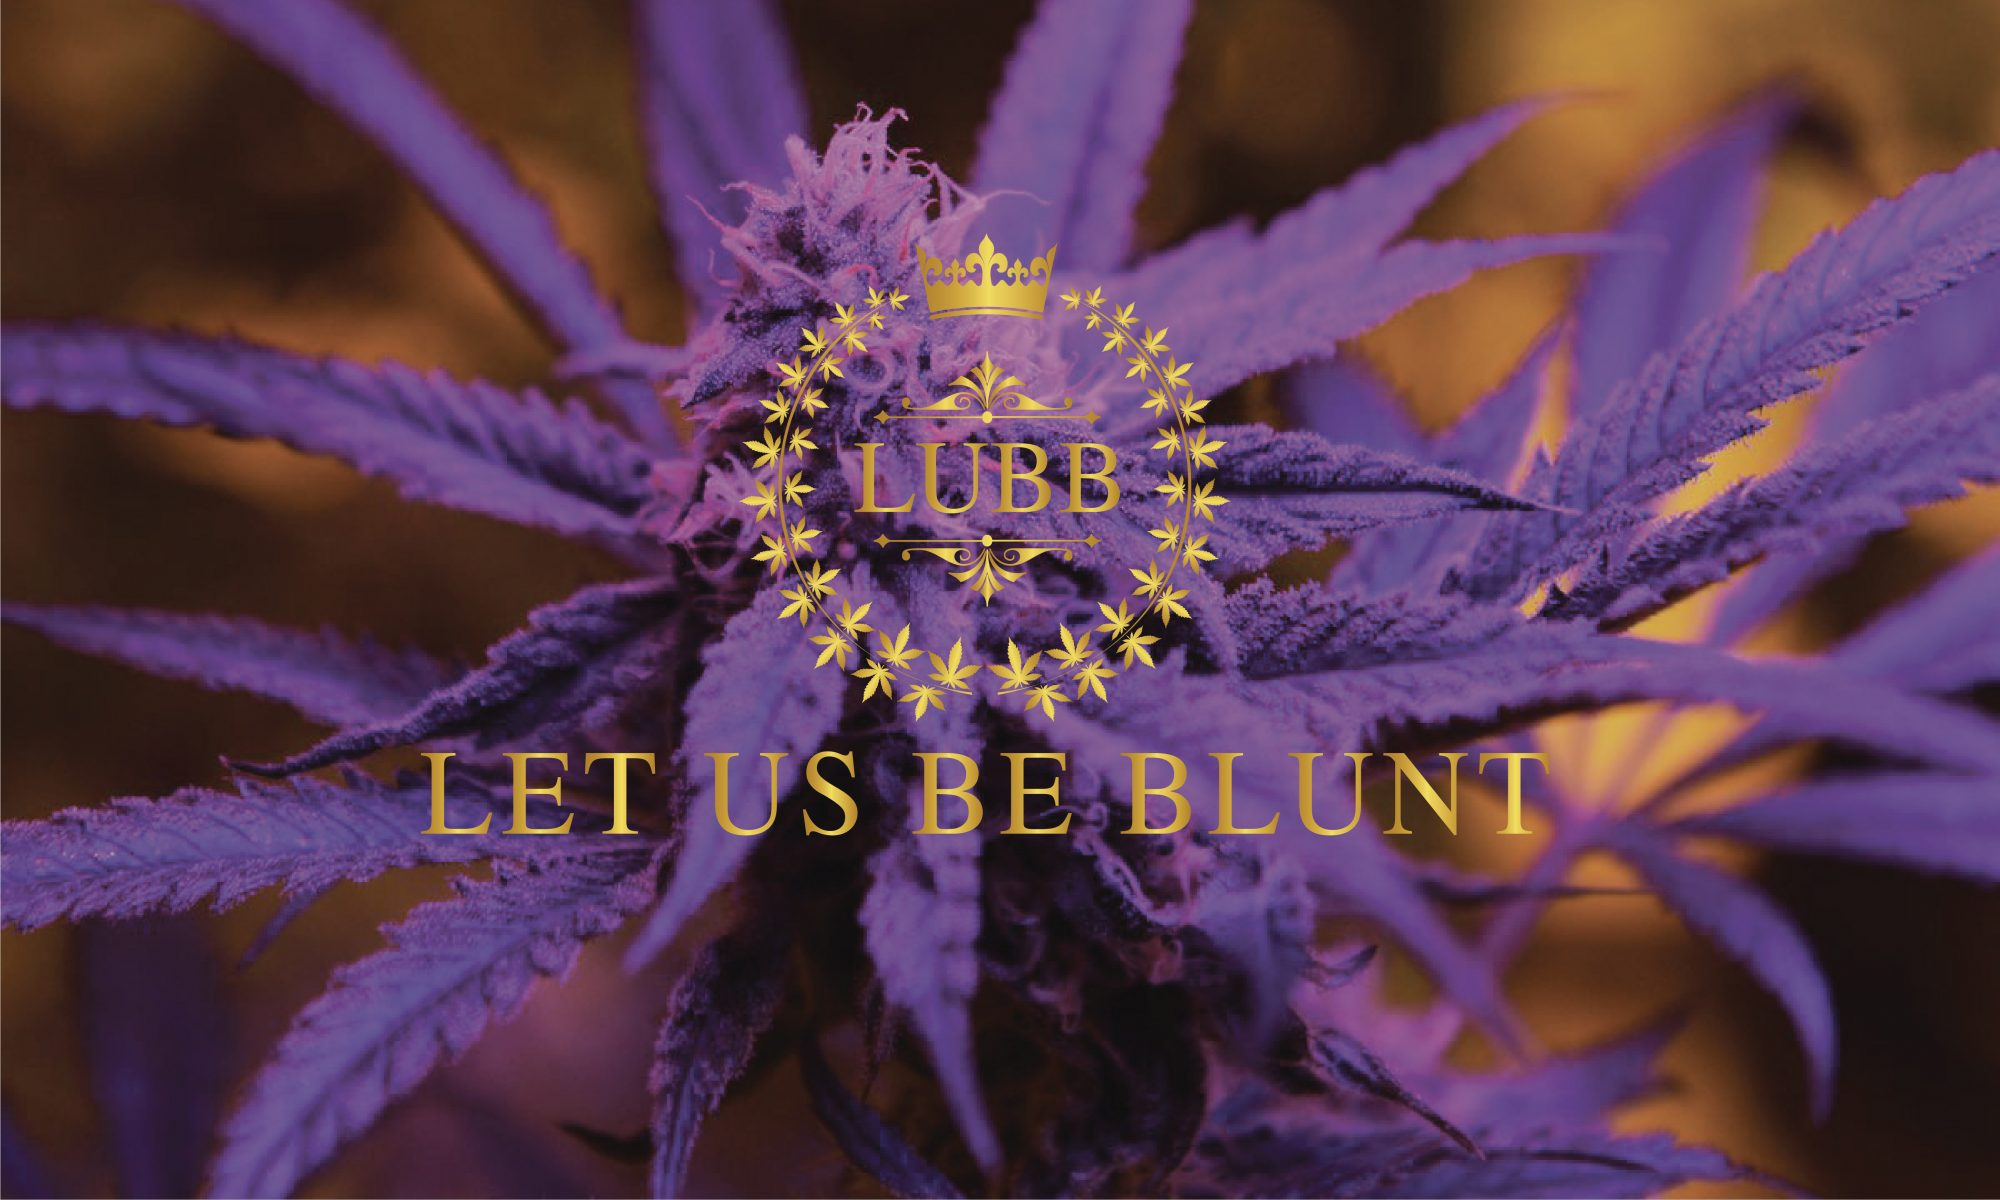 Let Us Be Blunt